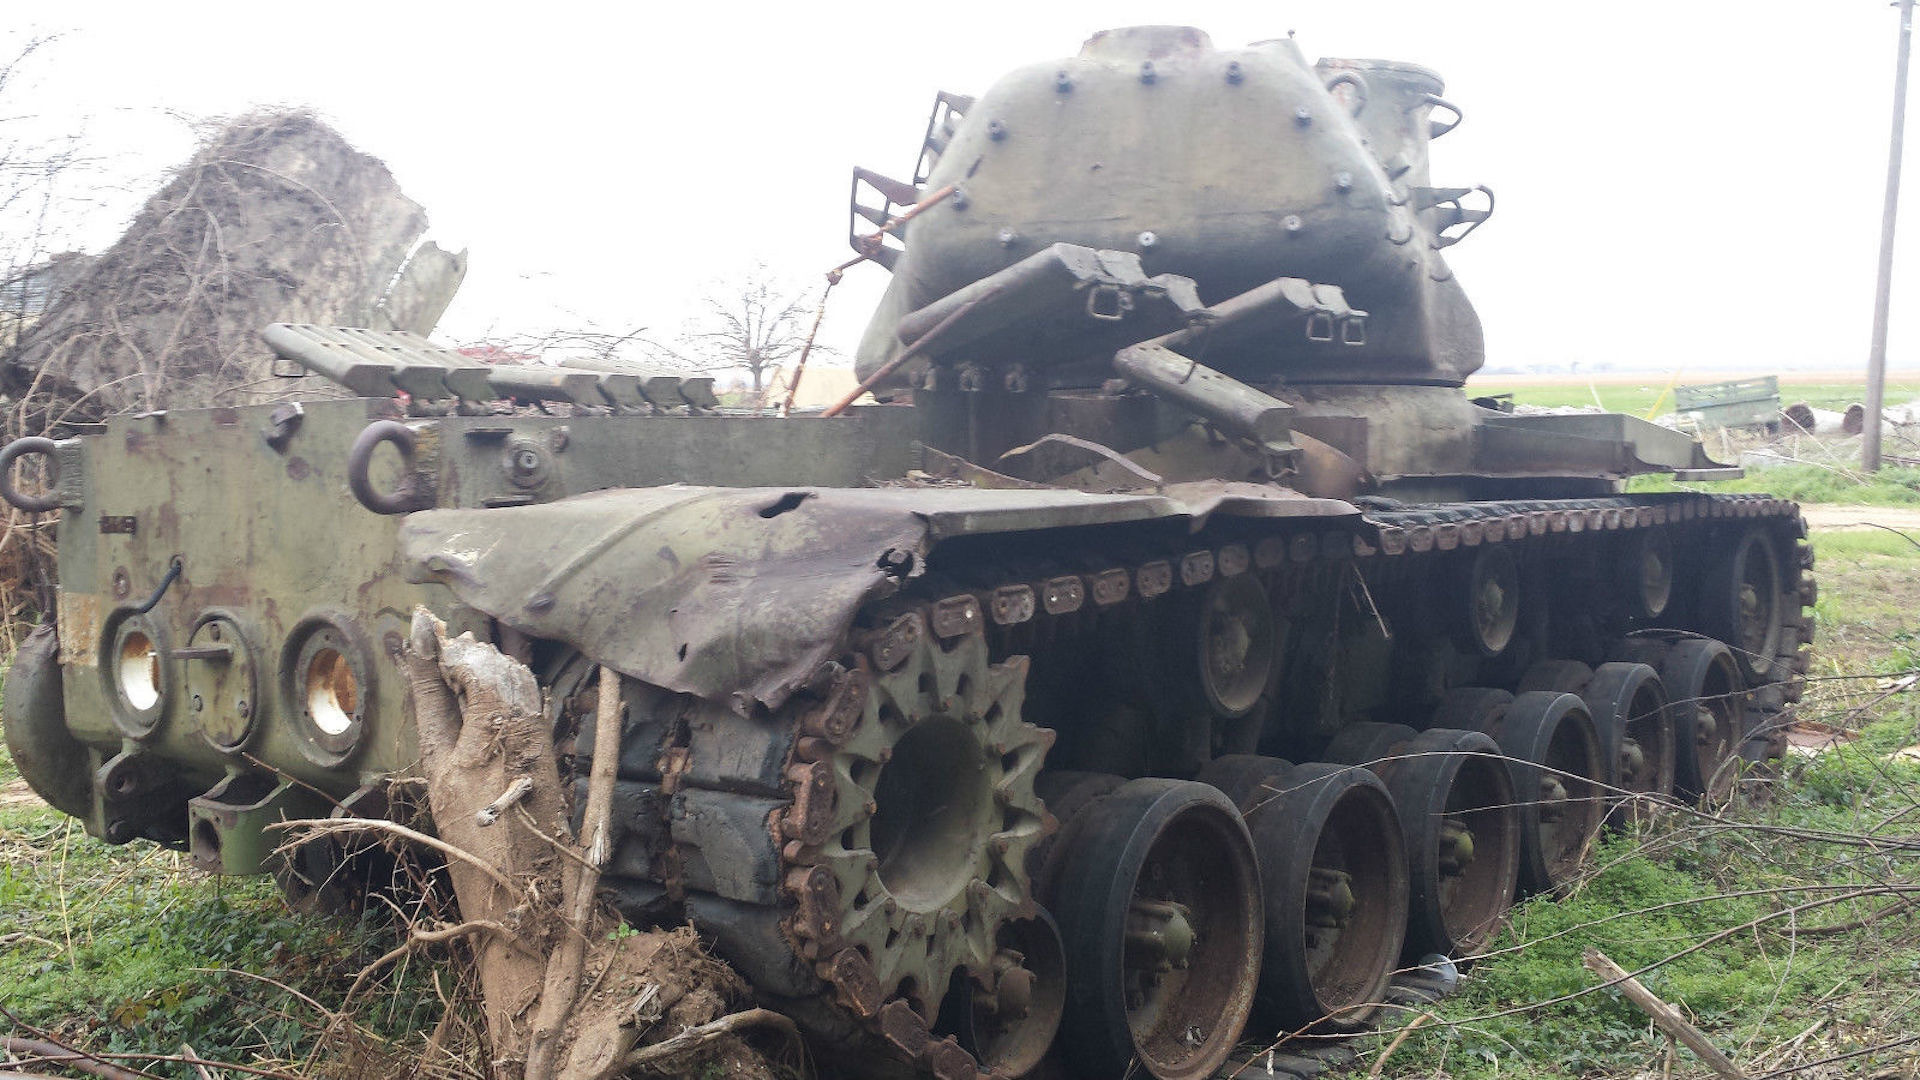 Army Tanks For Sale >> Tank For Sale On Ebay Some Assembly Required